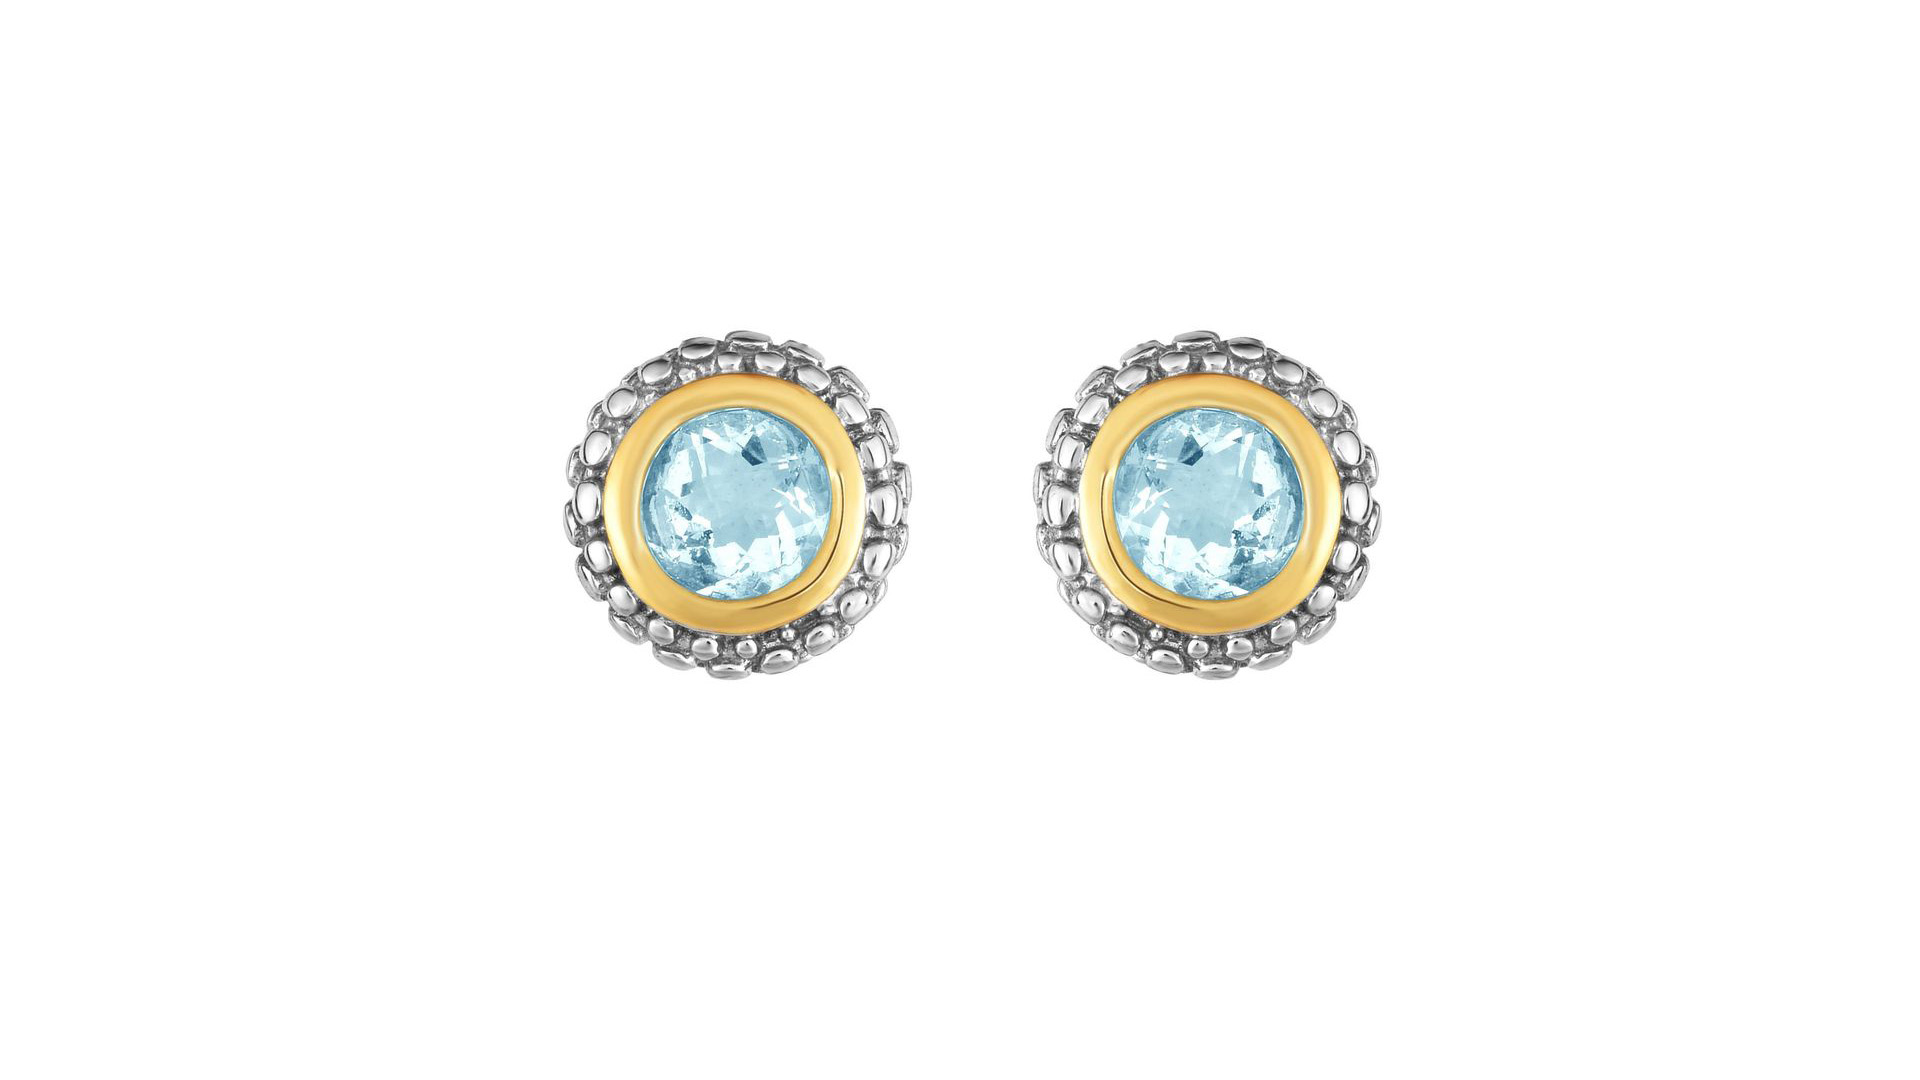 Beautiful Jewelry On Mother's Day Sale - 18k Gold And Sterling Silver Aquamarine Stud Earrings